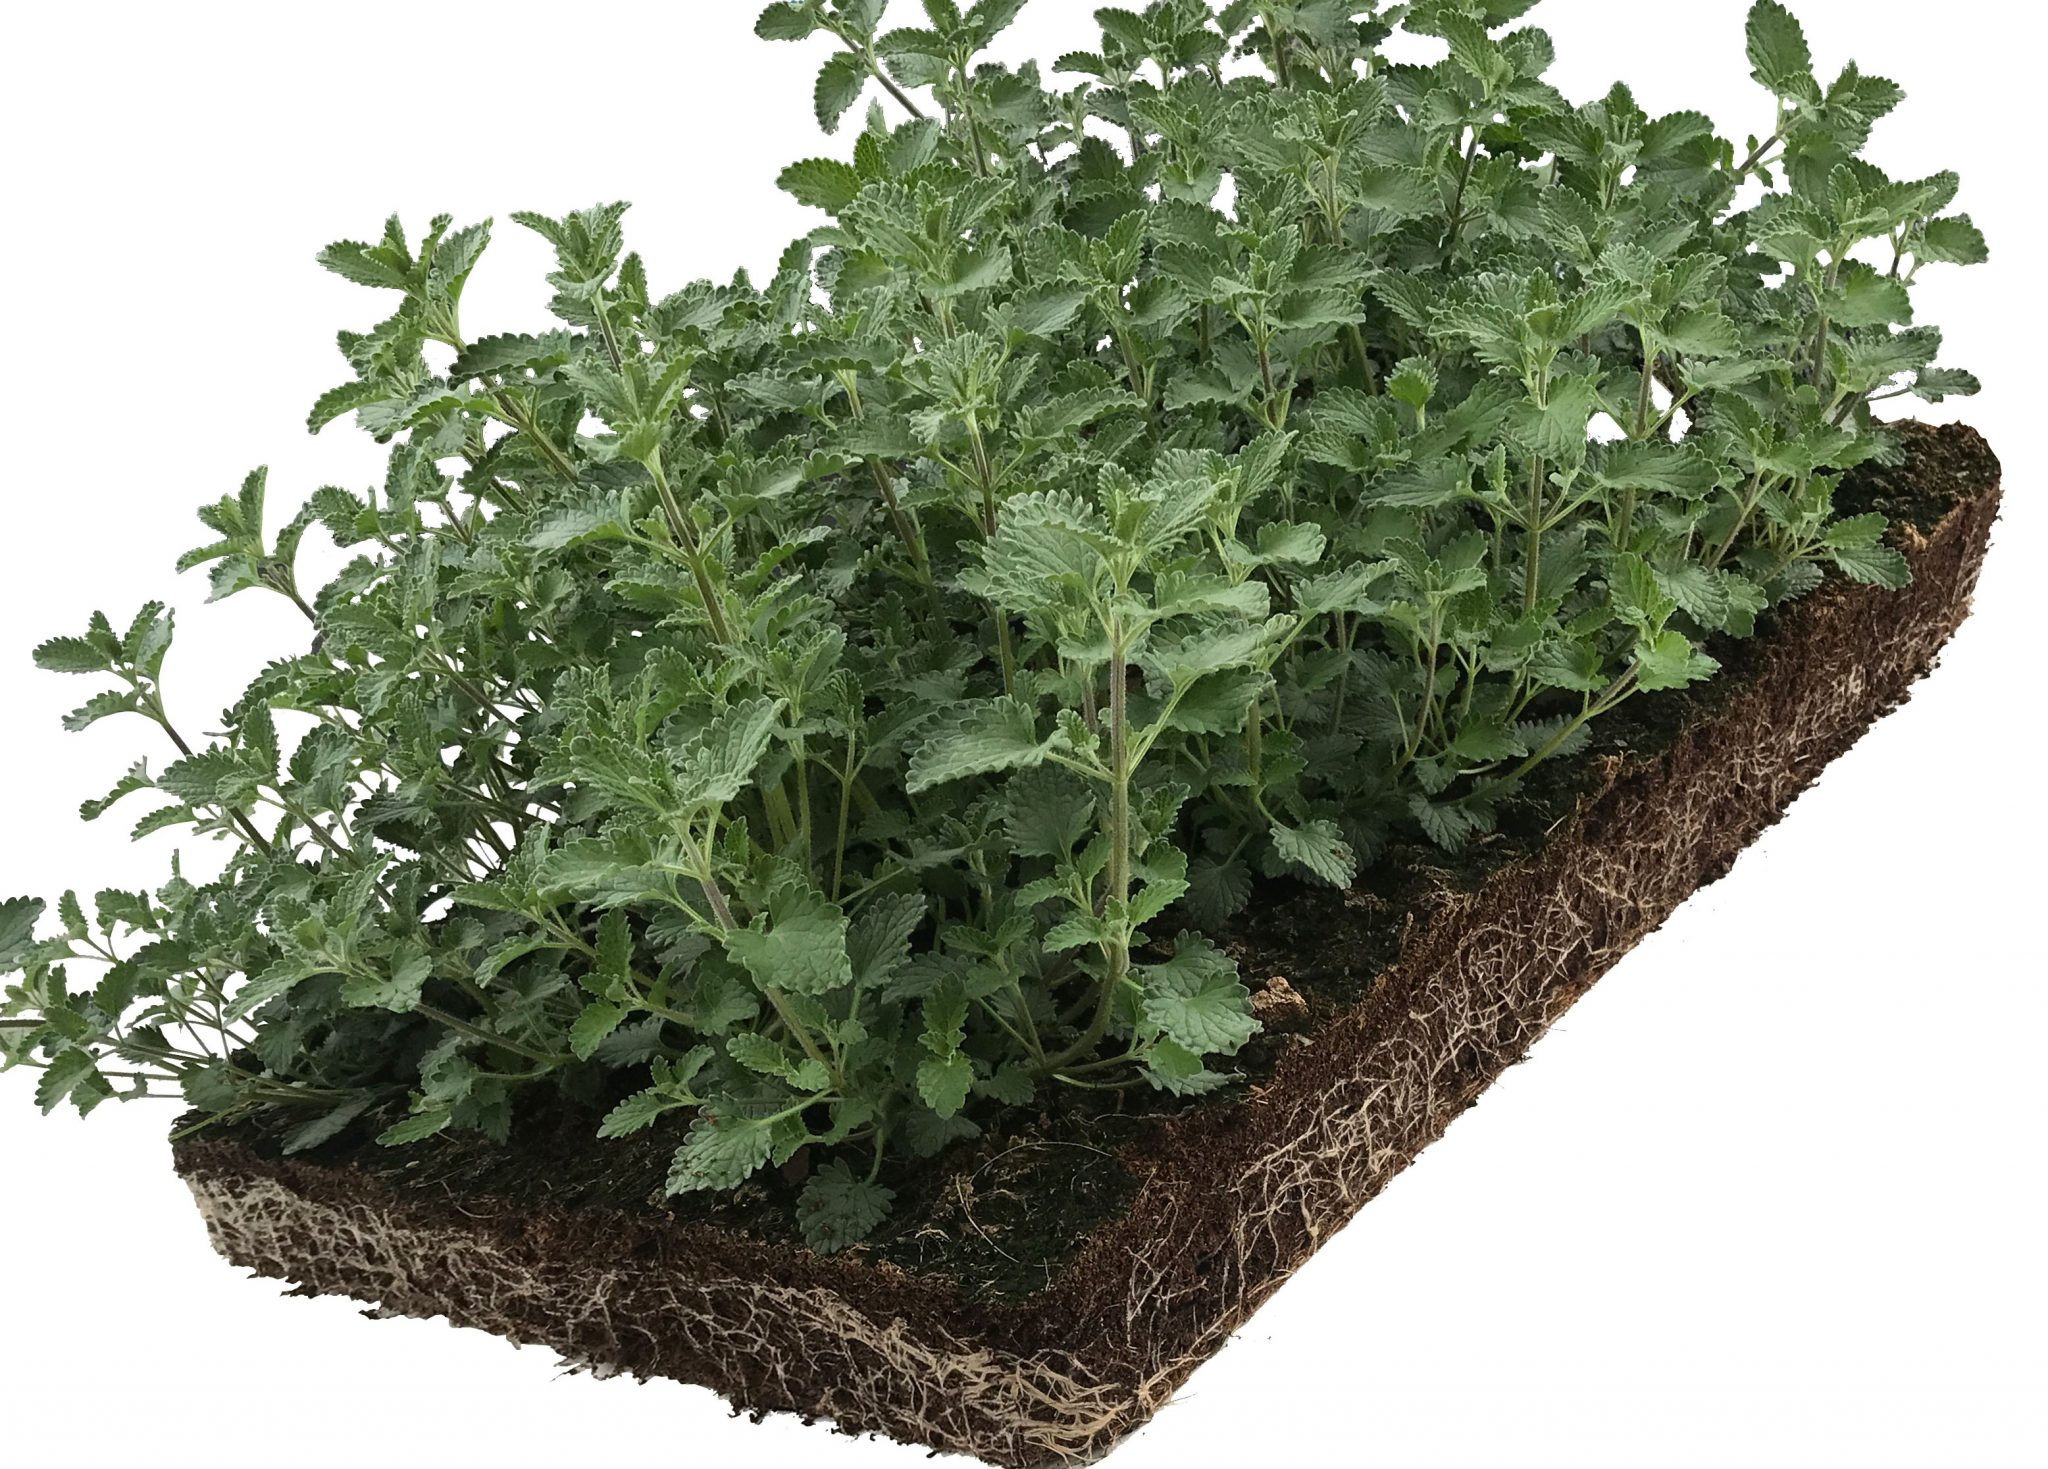 Covergreen nepeta